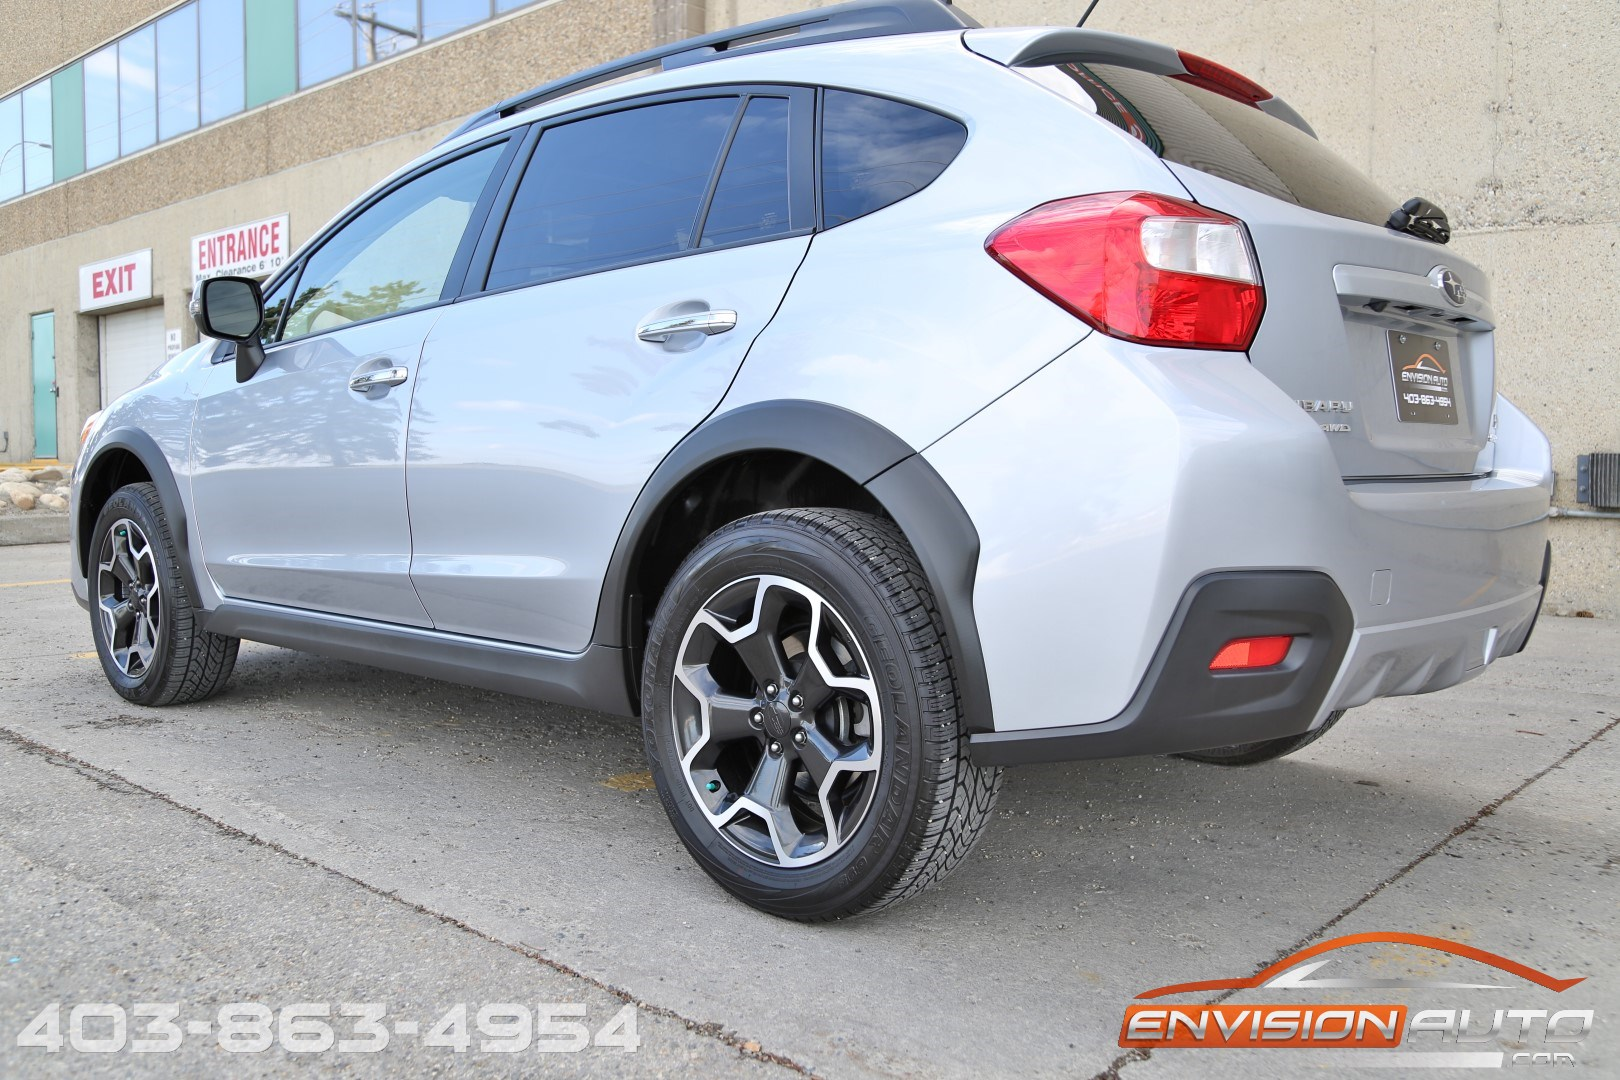 2014 subaru xv crosstrek limited 1 owner spotless carproof envision auto. Black Bedroom Furniture Sets. Home Design Ideas